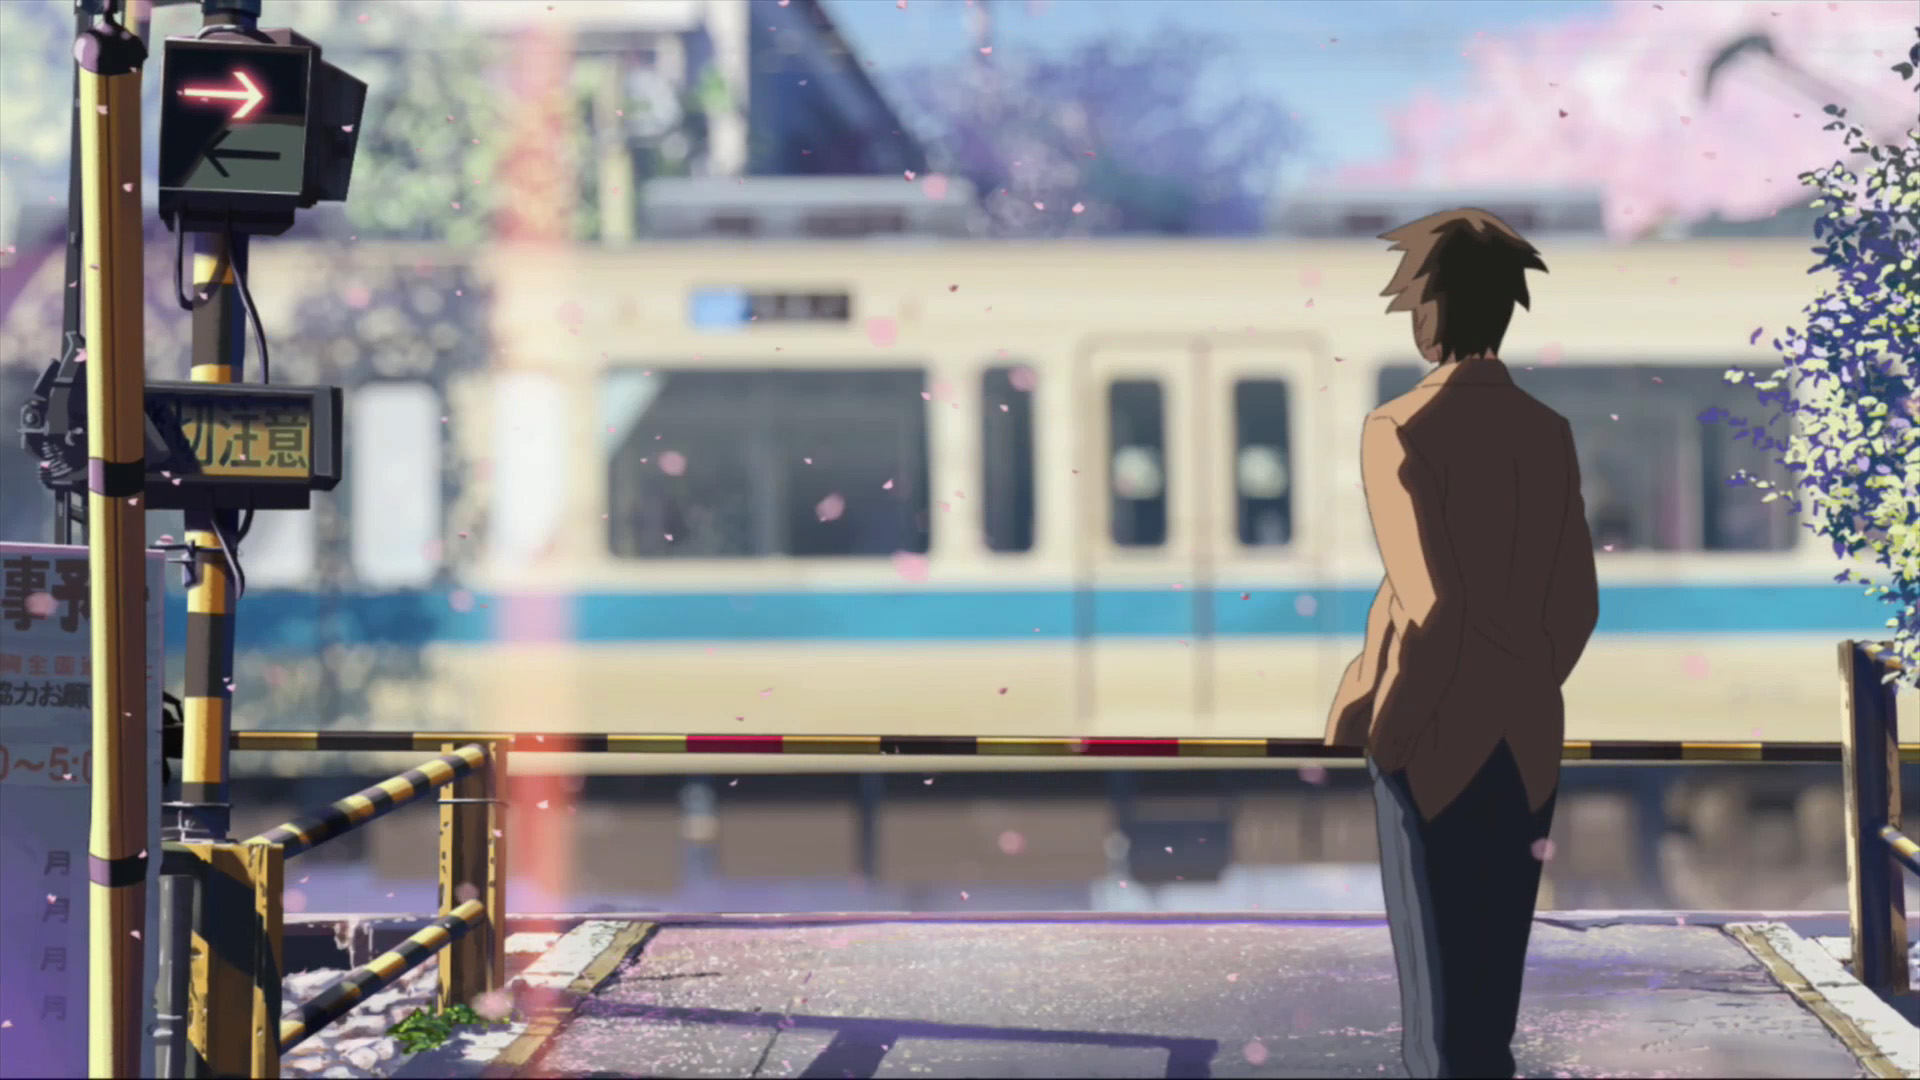 5 centimeters per second review analysis by soku go senchim toru insights art. Black Bedroom Furniture Sets. Home Design Ideas